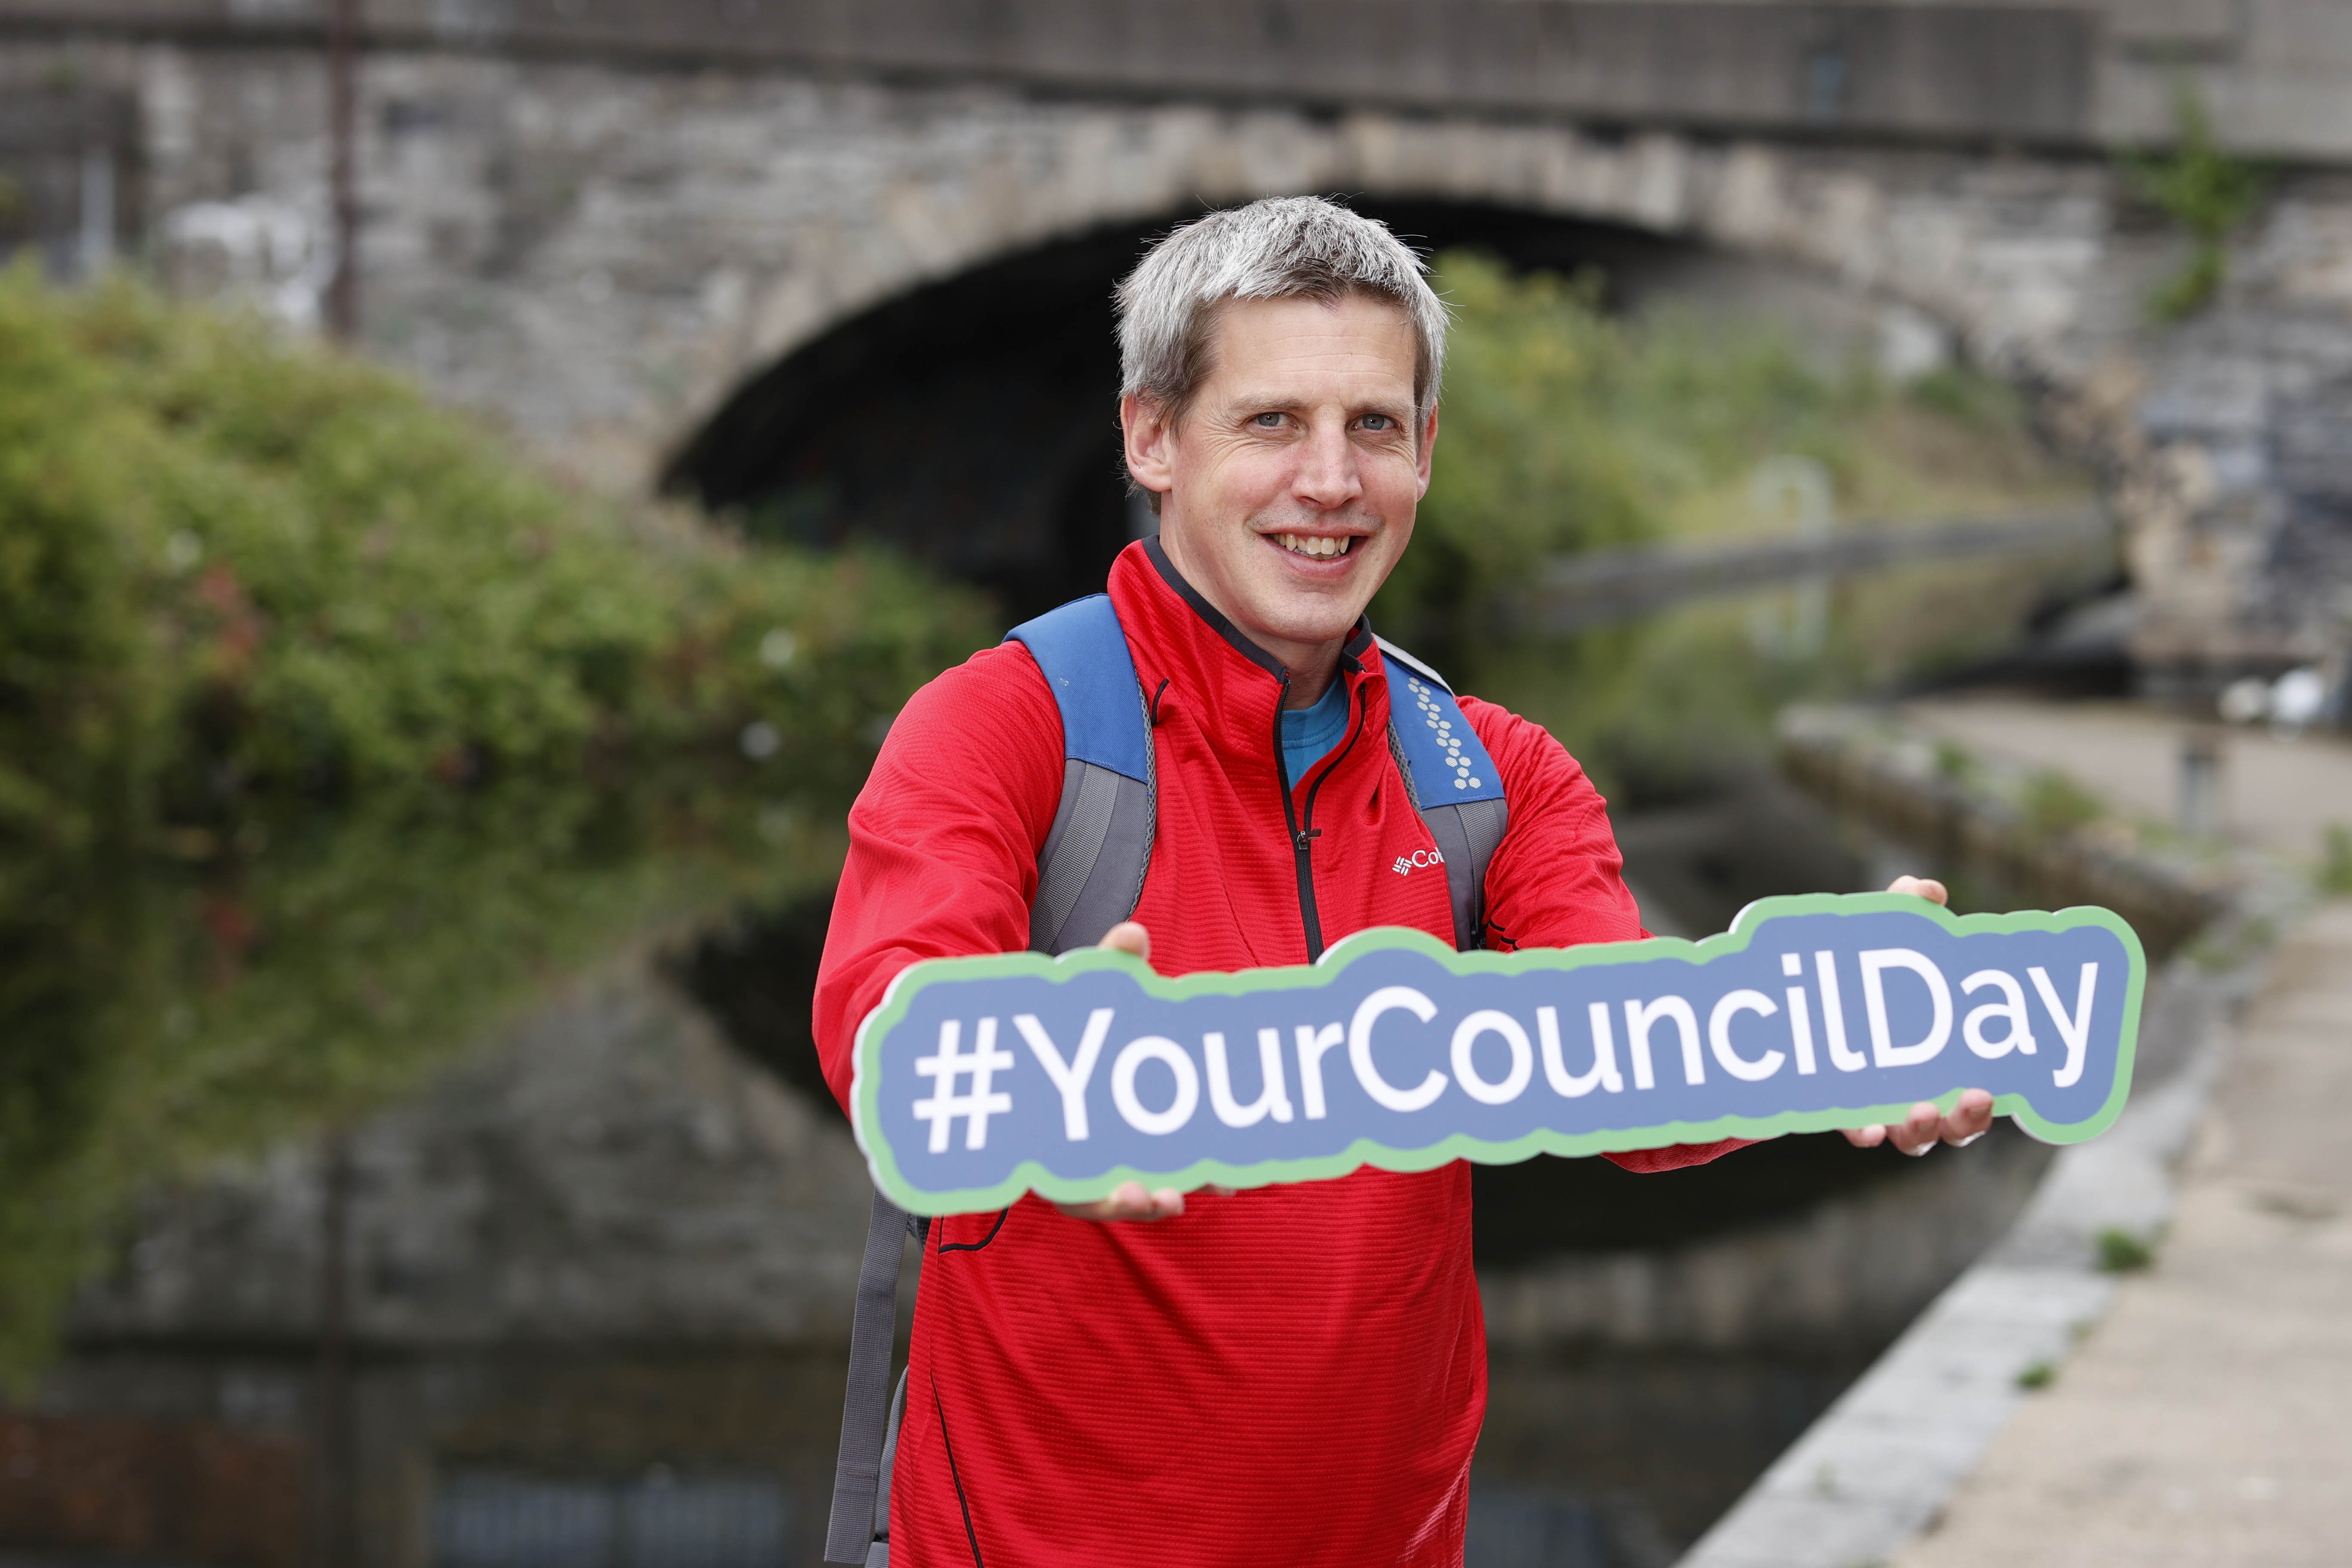 Local authority Covid-19 innovations highlighted on 'Your Council Day'